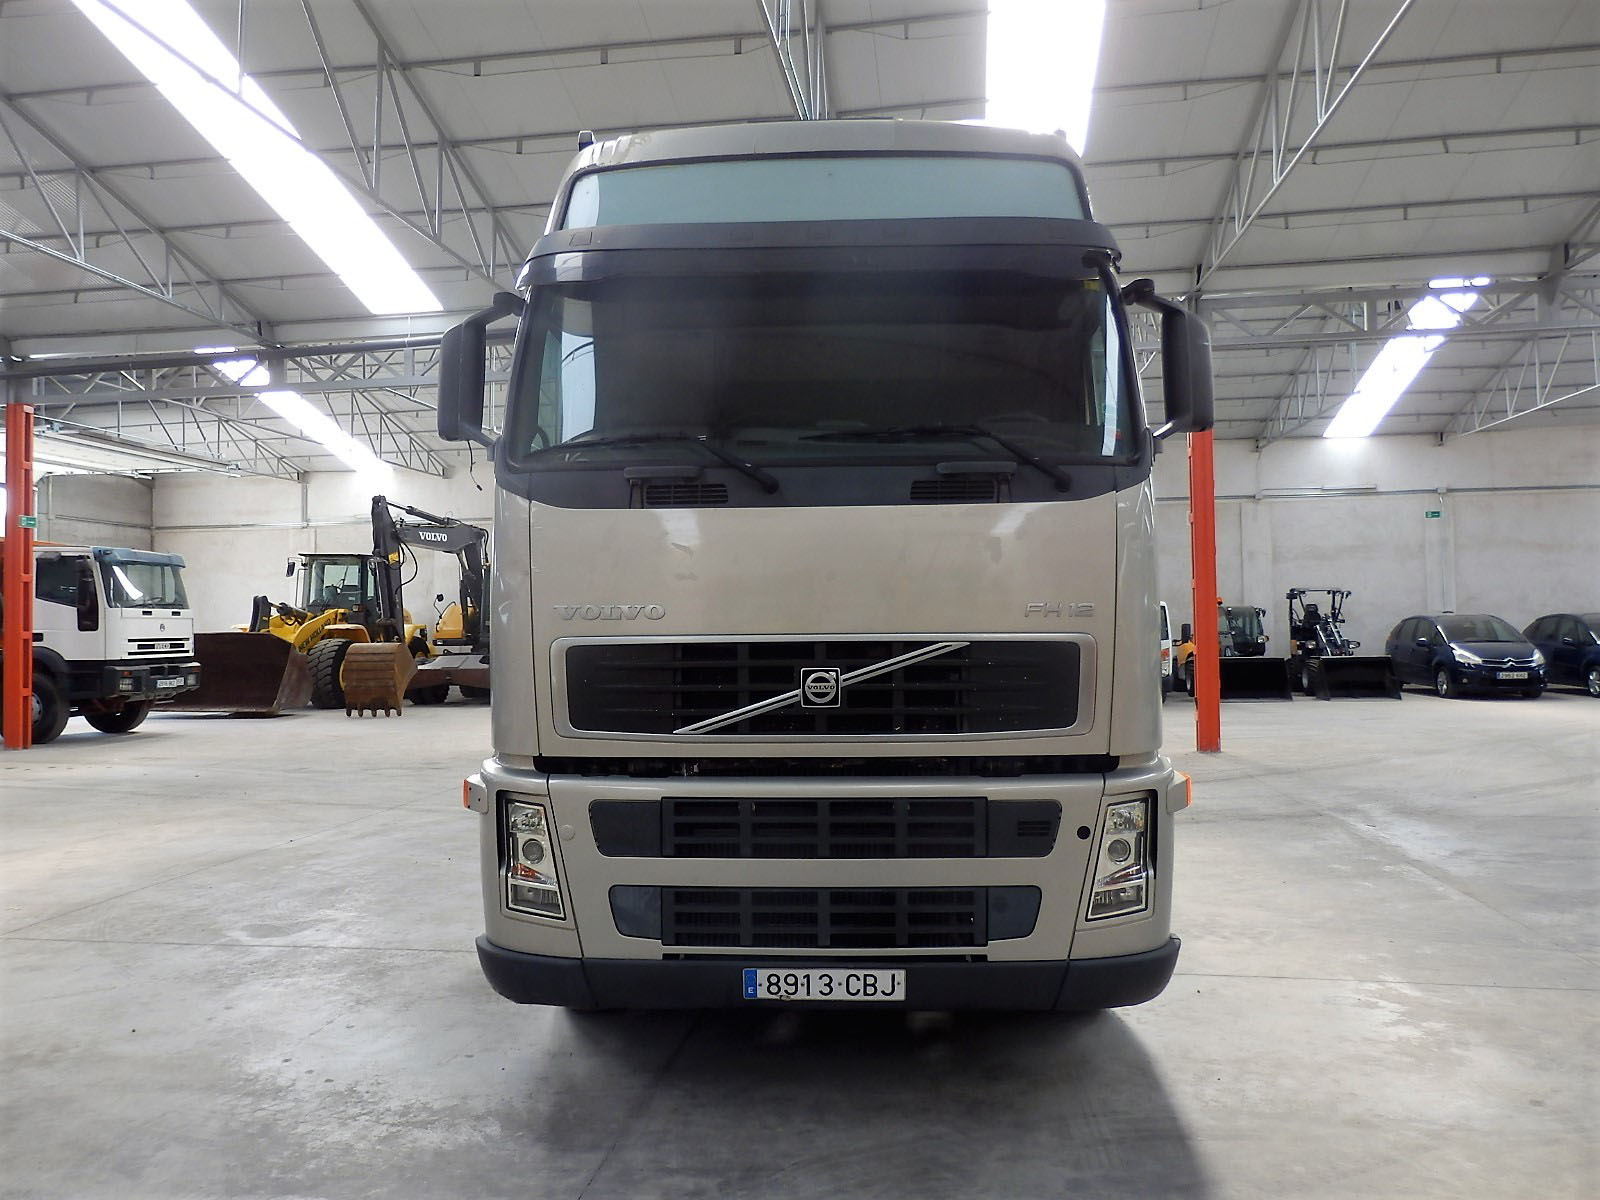 Volvo_FH12_2003-3